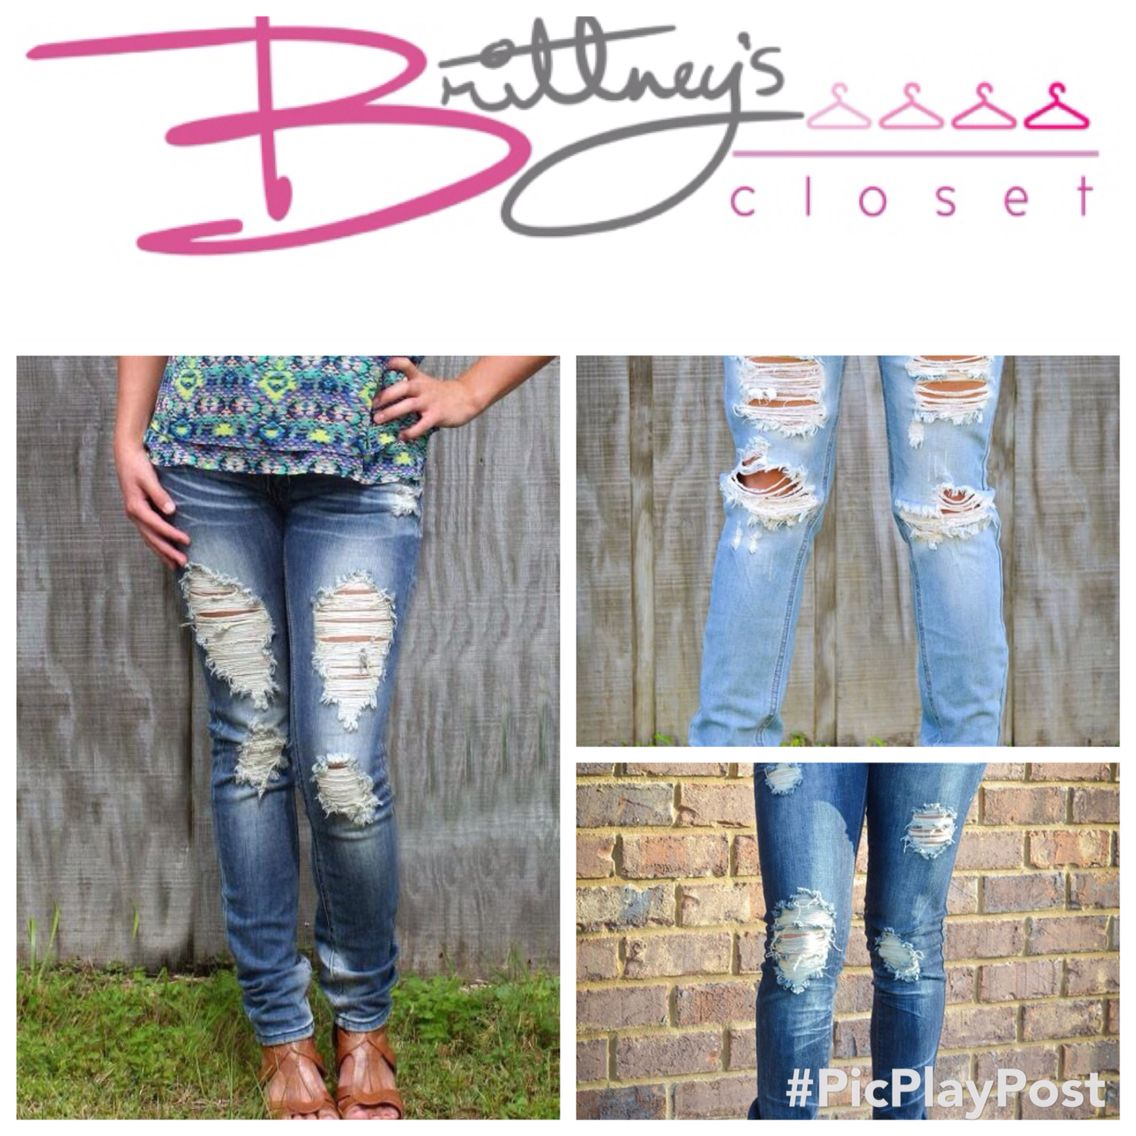 Are you prepped for fall? Be honest, those boots of yours would look a lot cuter paired with some new jeans. Skinny jeans by MACHINE, only $42.00 shipped and three washes to choose from. Be sure to like,share and comment on their facebook page to Win in the contest